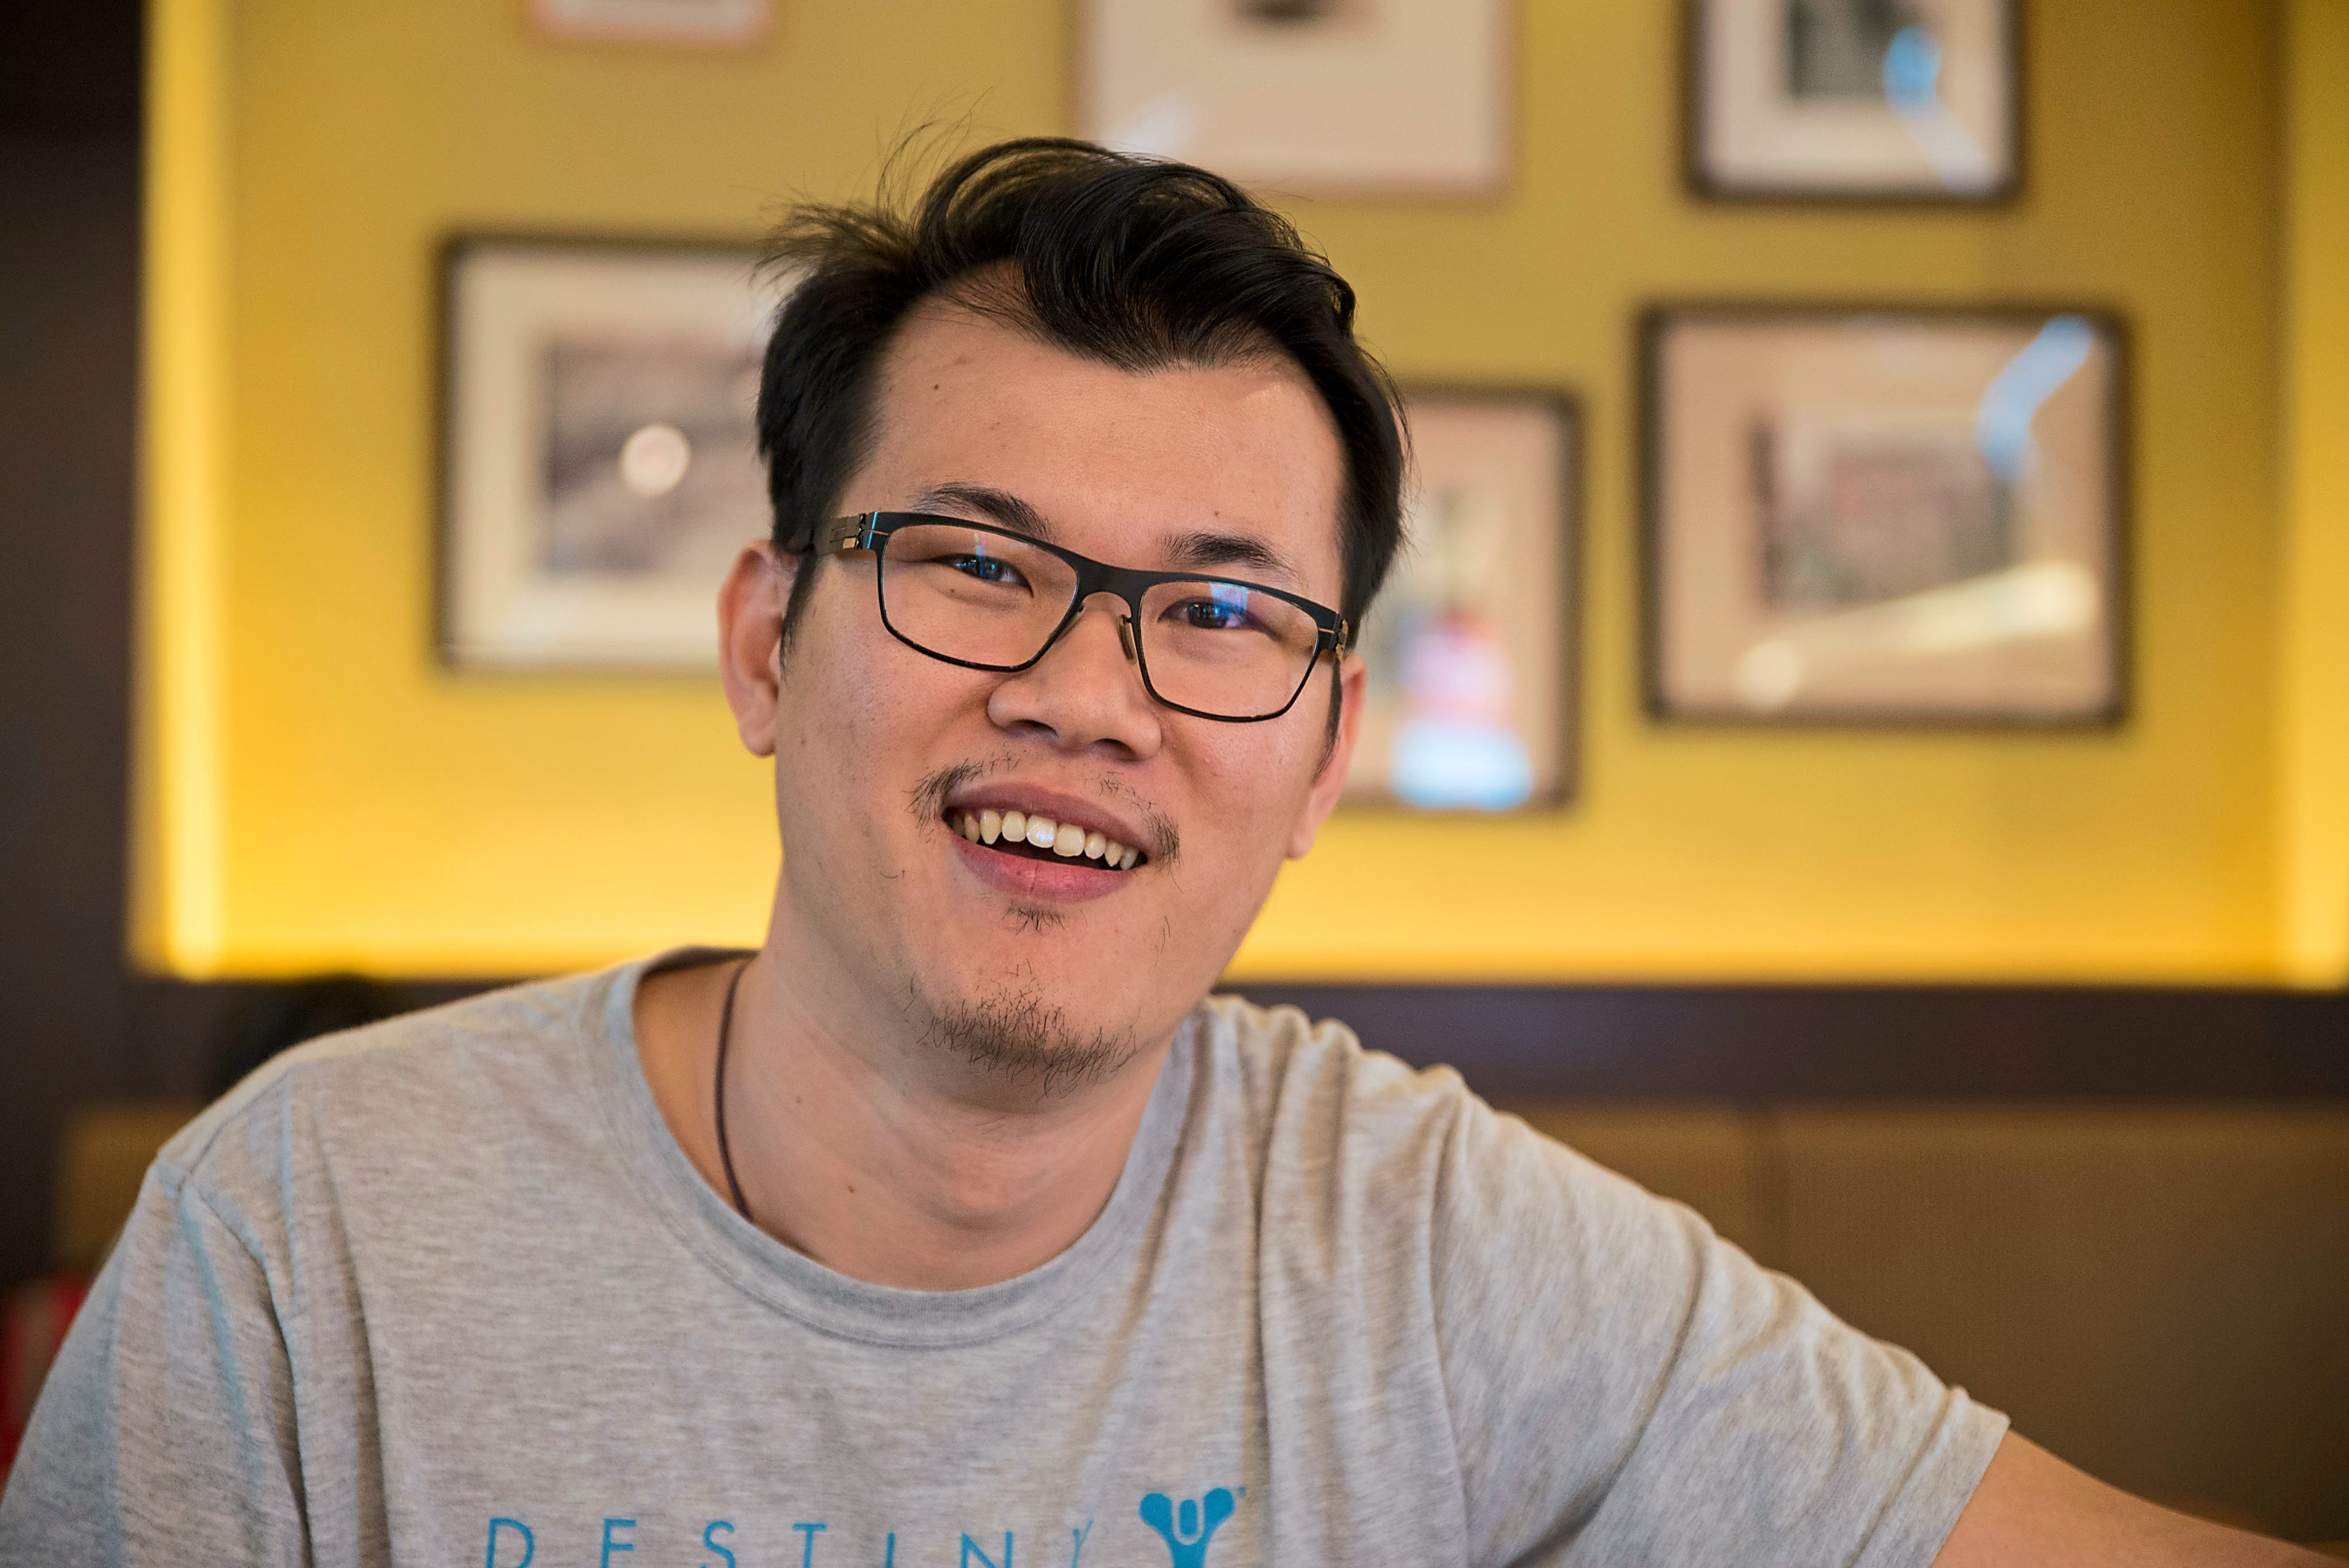 Changing landscape: Eddy Yap, co-owner of Gamers Hideout, says that digital downloads will likely overtake games bought from physical stores in three to five years.